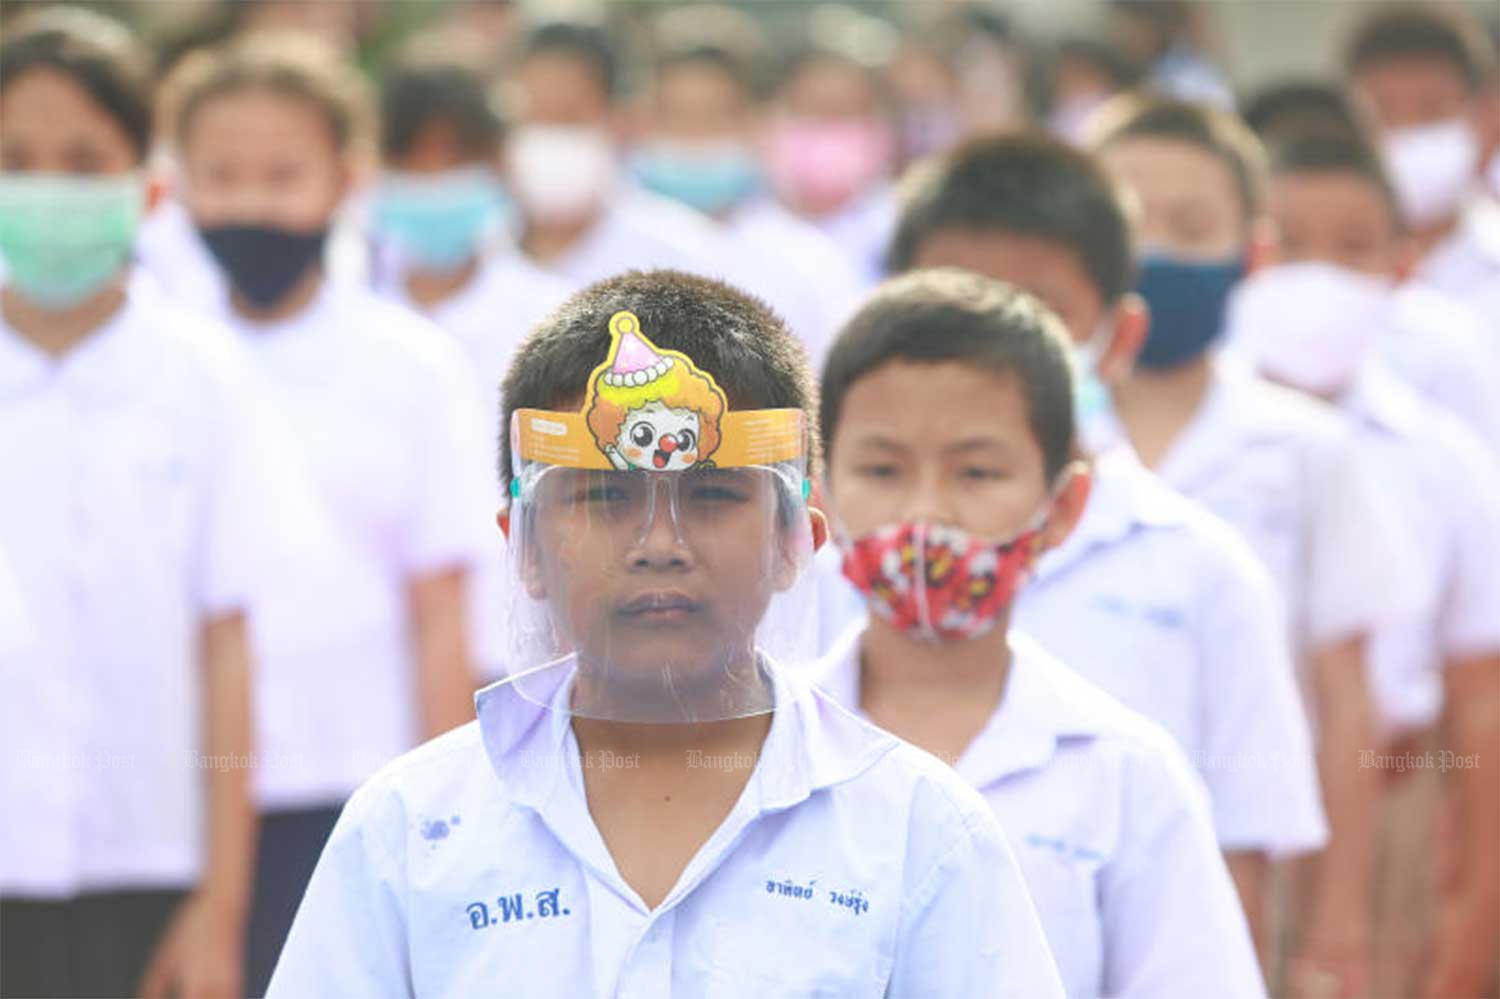 Pupils at Intarumphun Anusorn School in Samut Prakan province wear face shields and face masks to school on Thursday. (Photo by Somchai Poomlard)